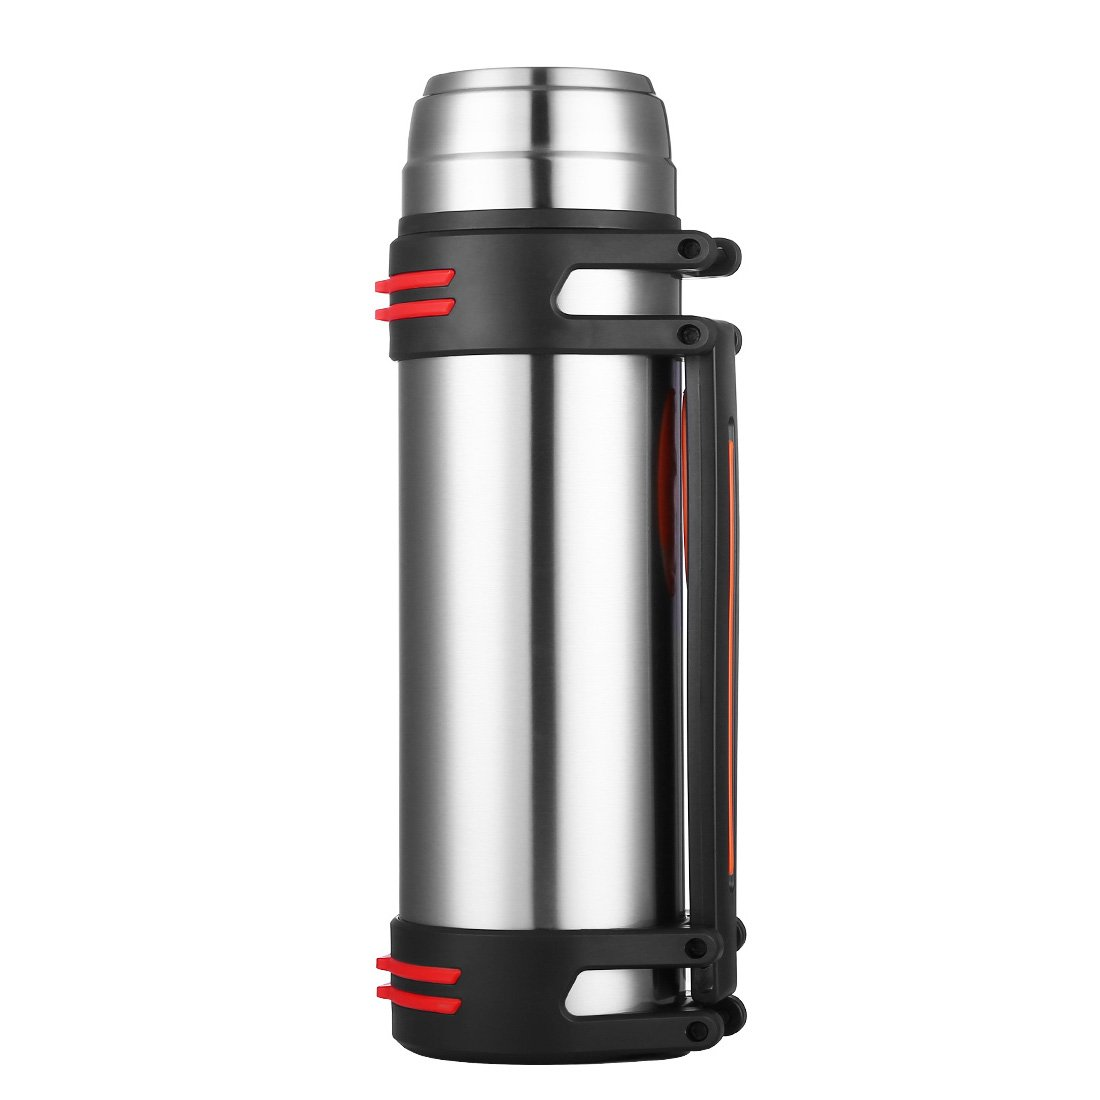 ONEISALL GYBL553 2.2L Stainless Steel Vacuum Flask,Large Insulated Outdoor Kettle,Travel Kettle for Hiking/Camping/Exercising(Stainless Steel-2.2L) Huizhou Weifan Trading Co. Ltd. GYBL553001